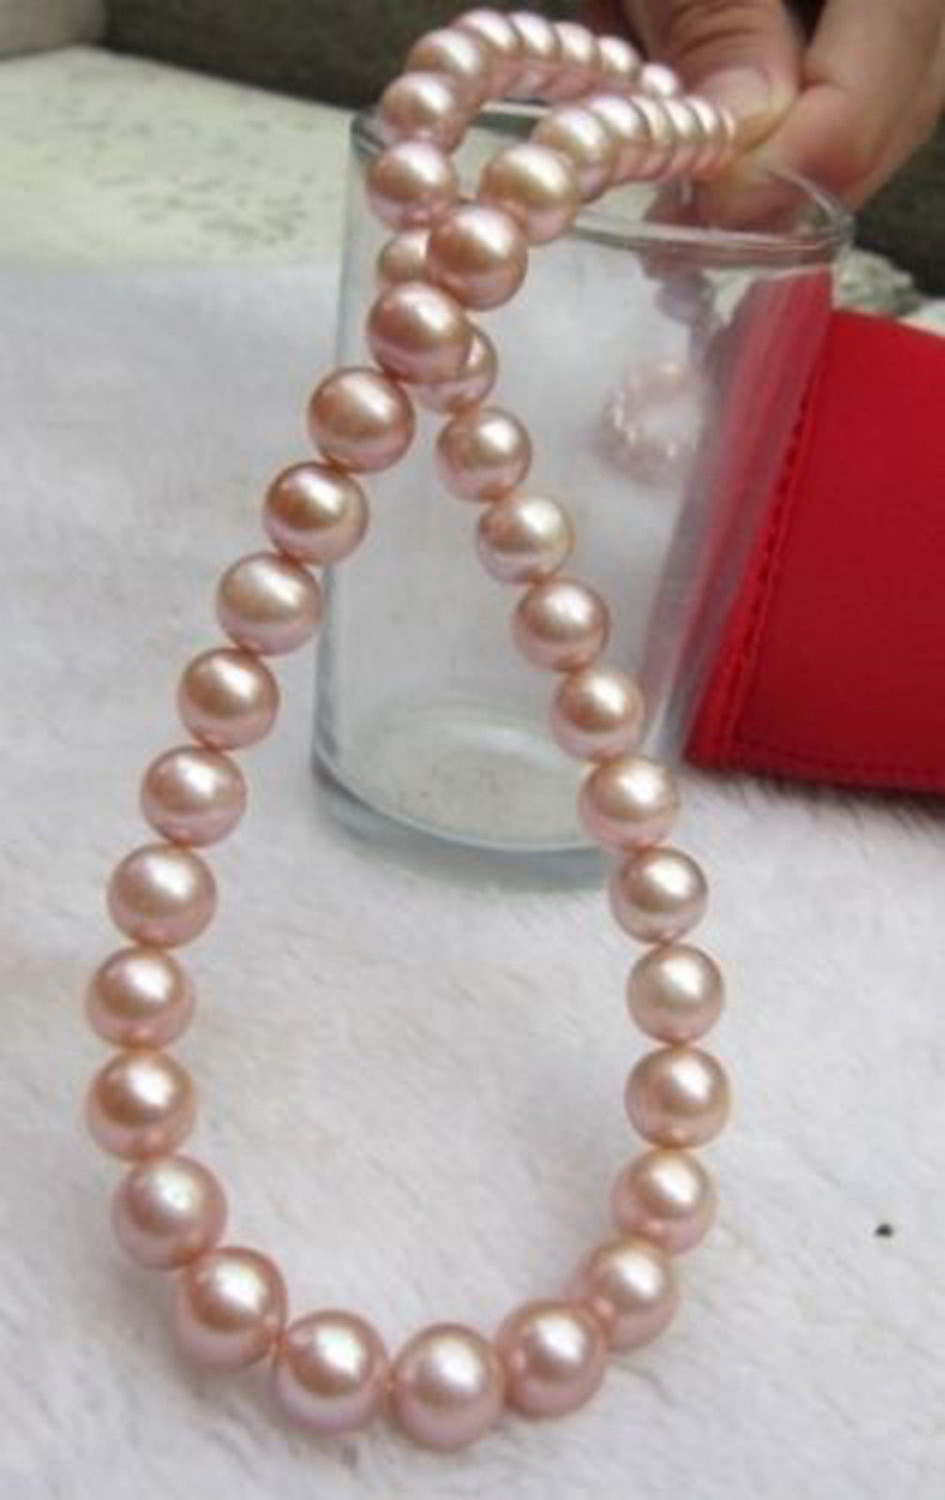 e0273d9c7 Gorgeous-34-252210-11mm-akoya-white-round-freshwater-cultured-pearl-necklace -AAA.jpg